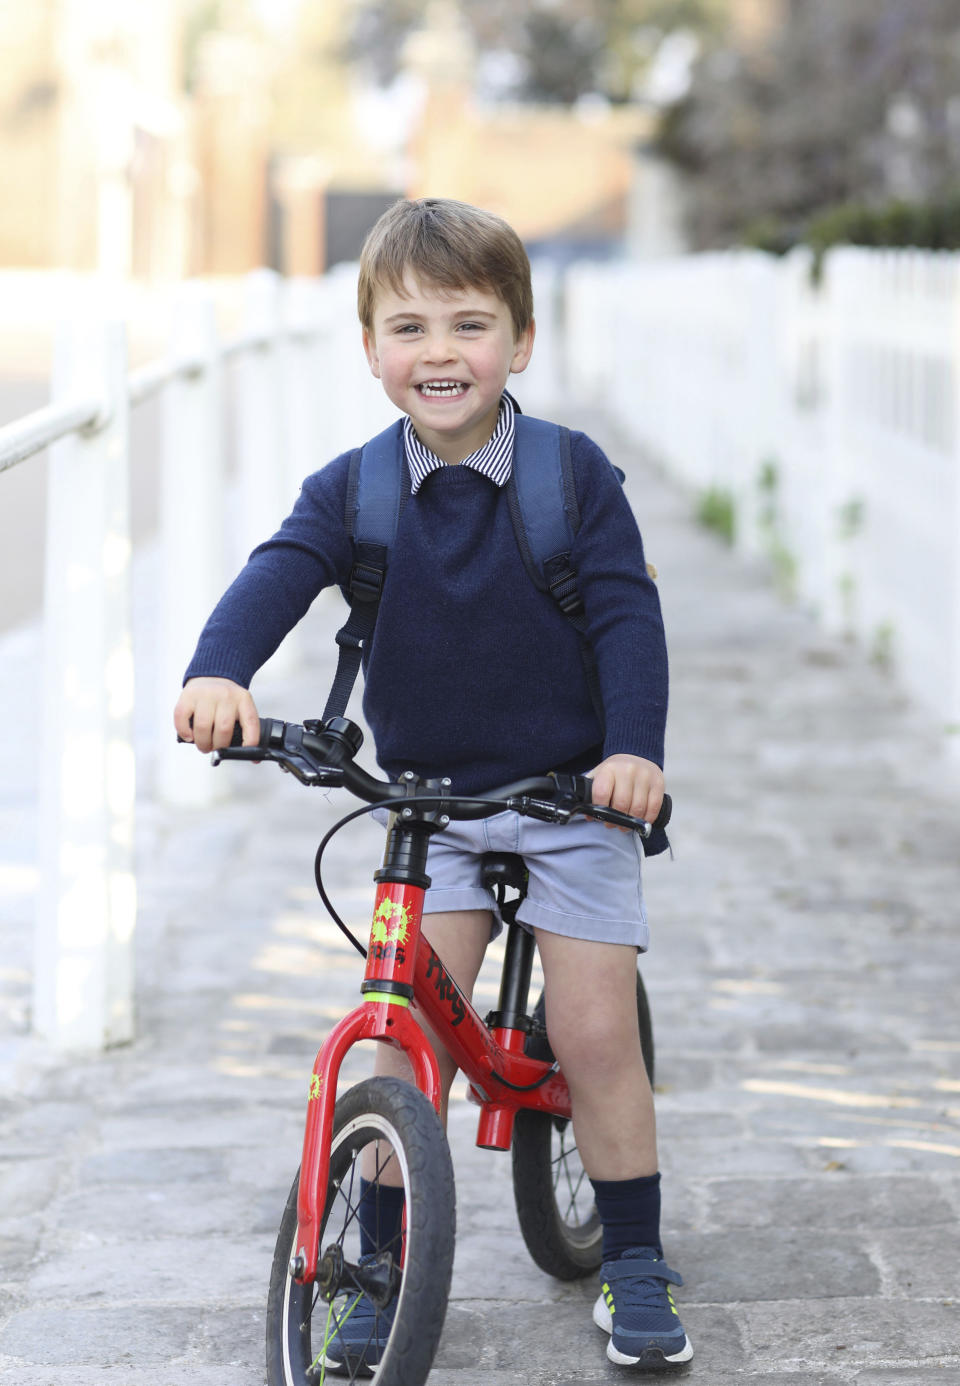 Prince Louis on a bike before his first day of nursery